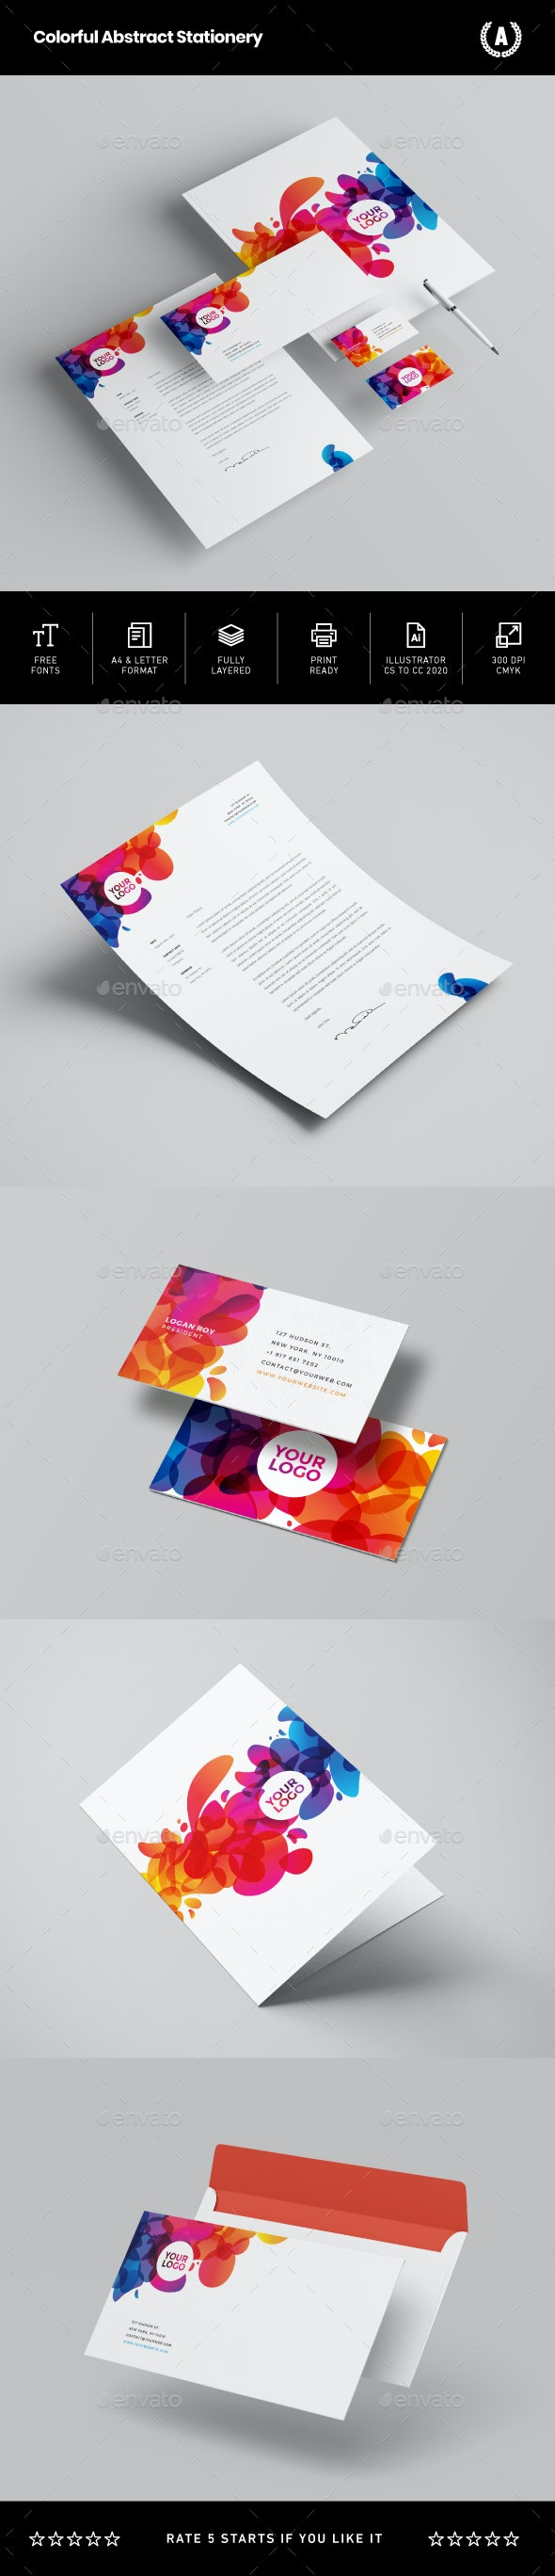 Colorful Abstract Stationery - Stationery Print Templates